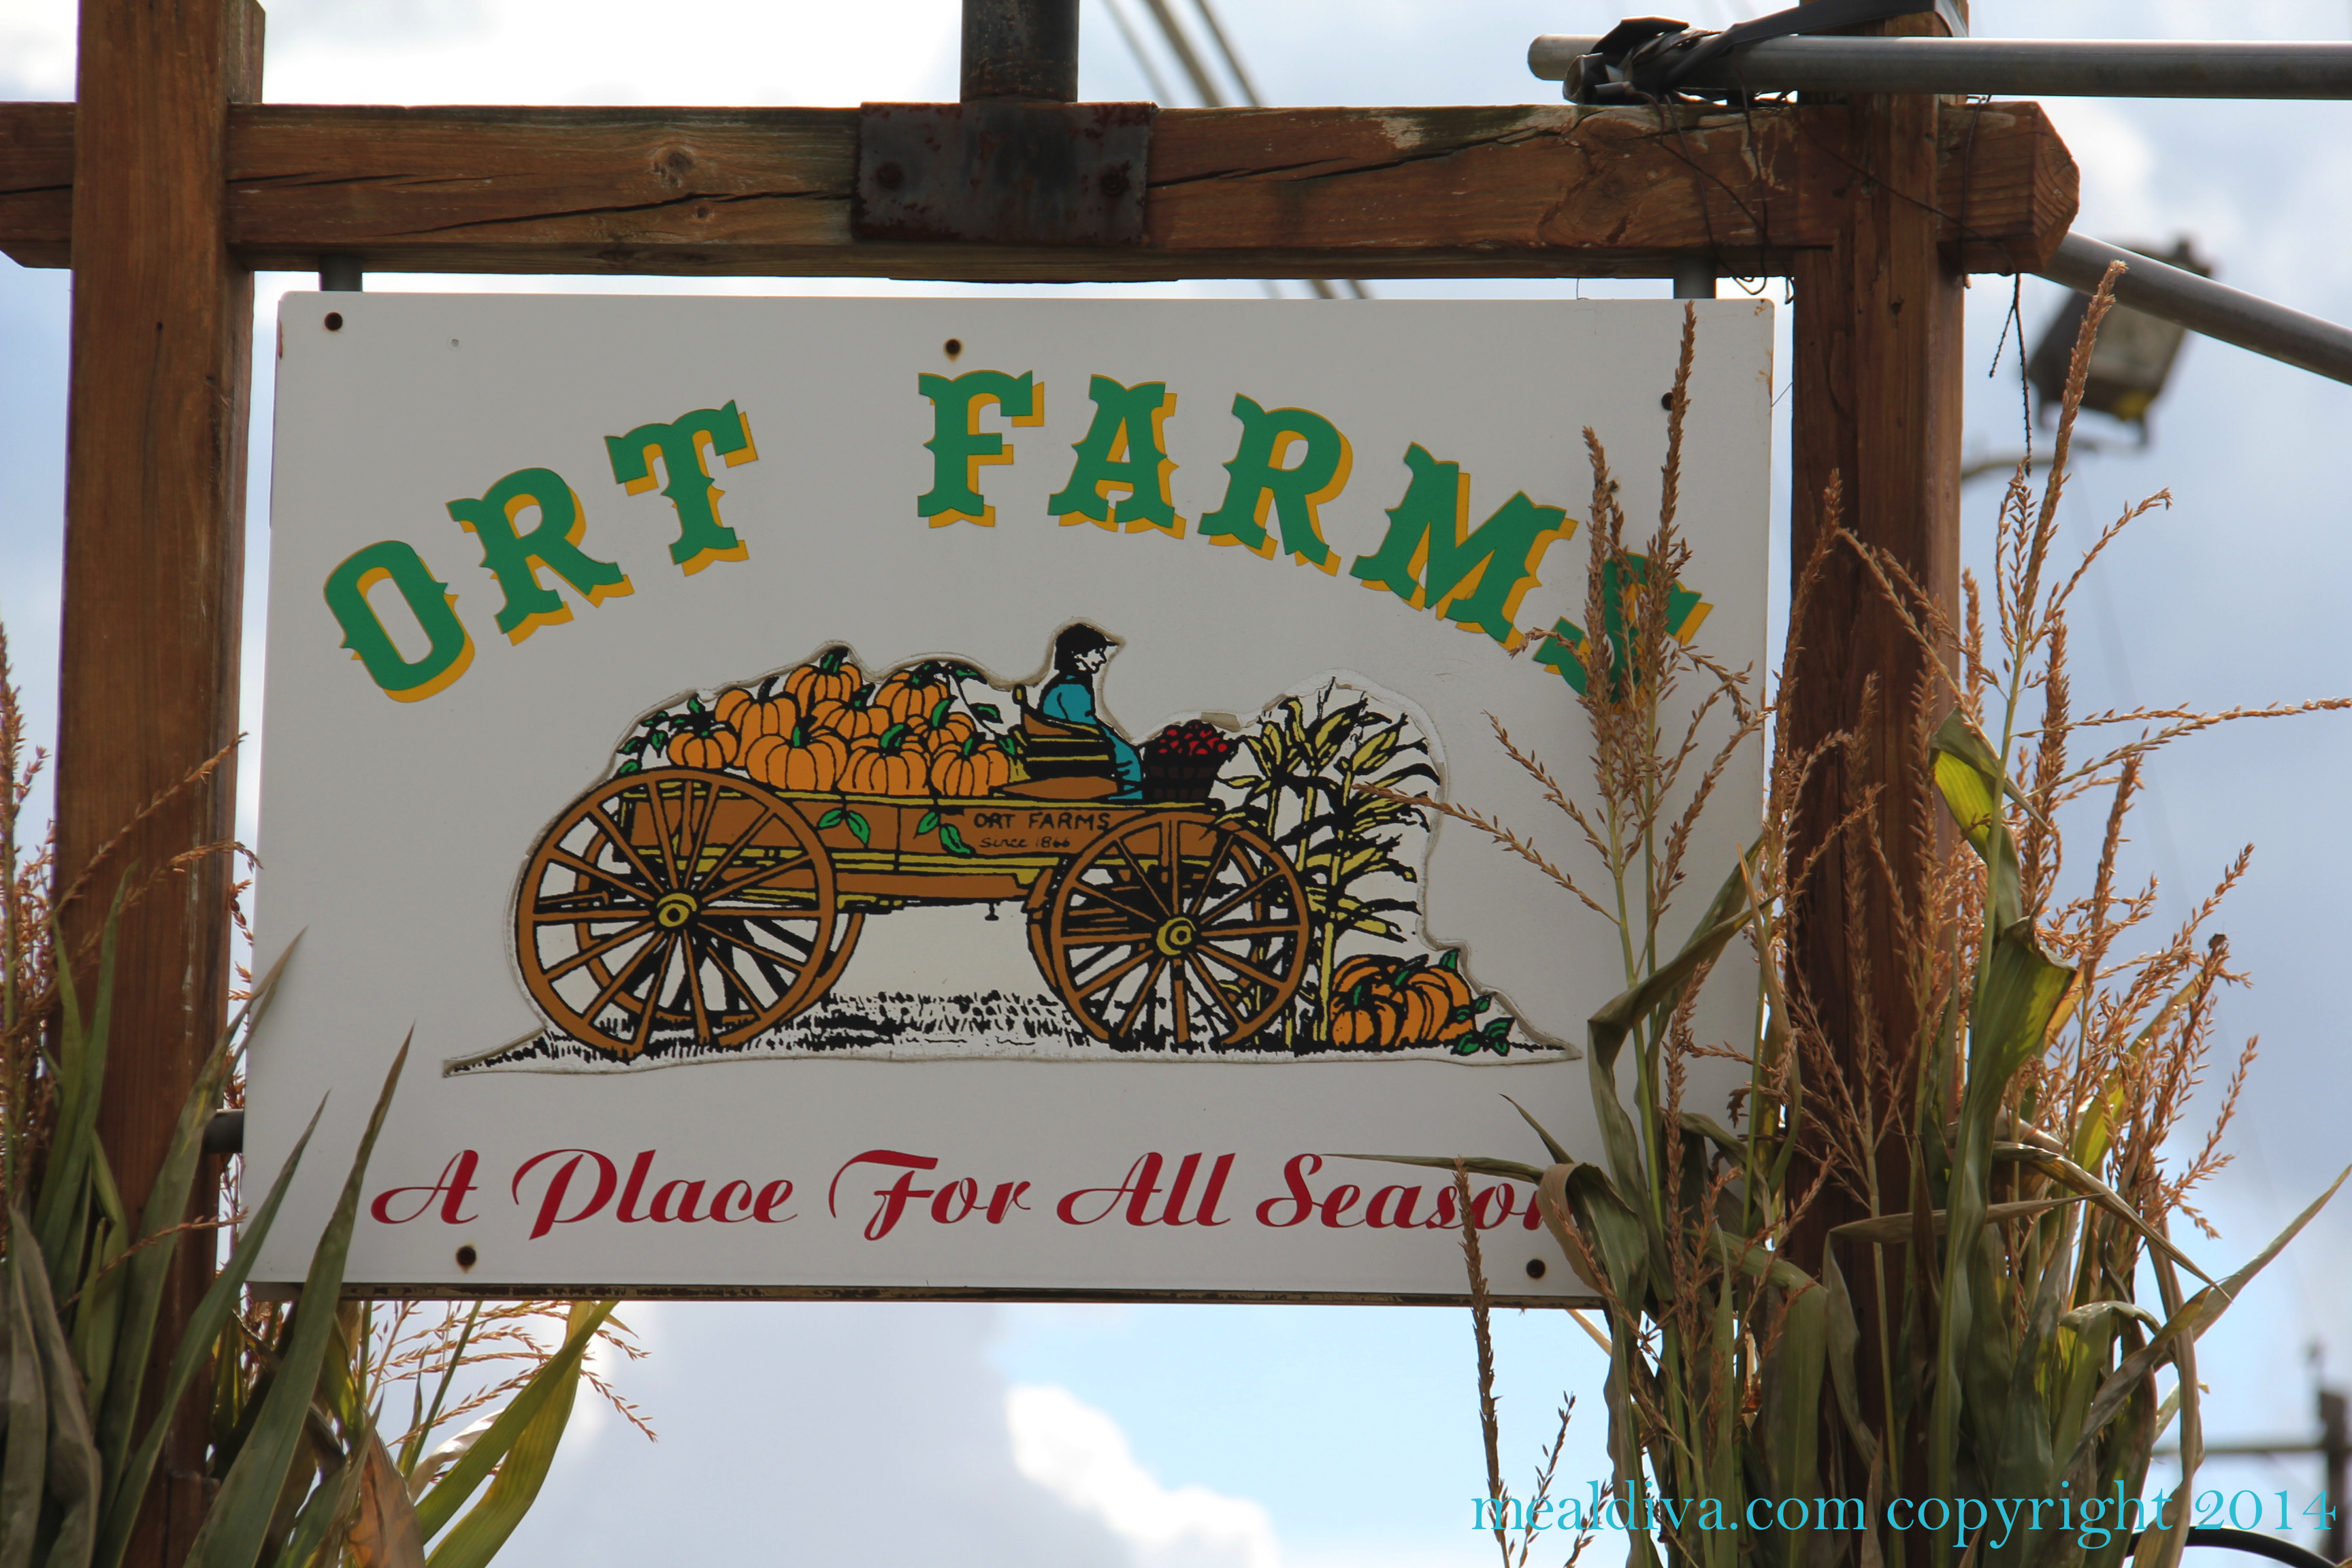 Ort Farms in Long Valley